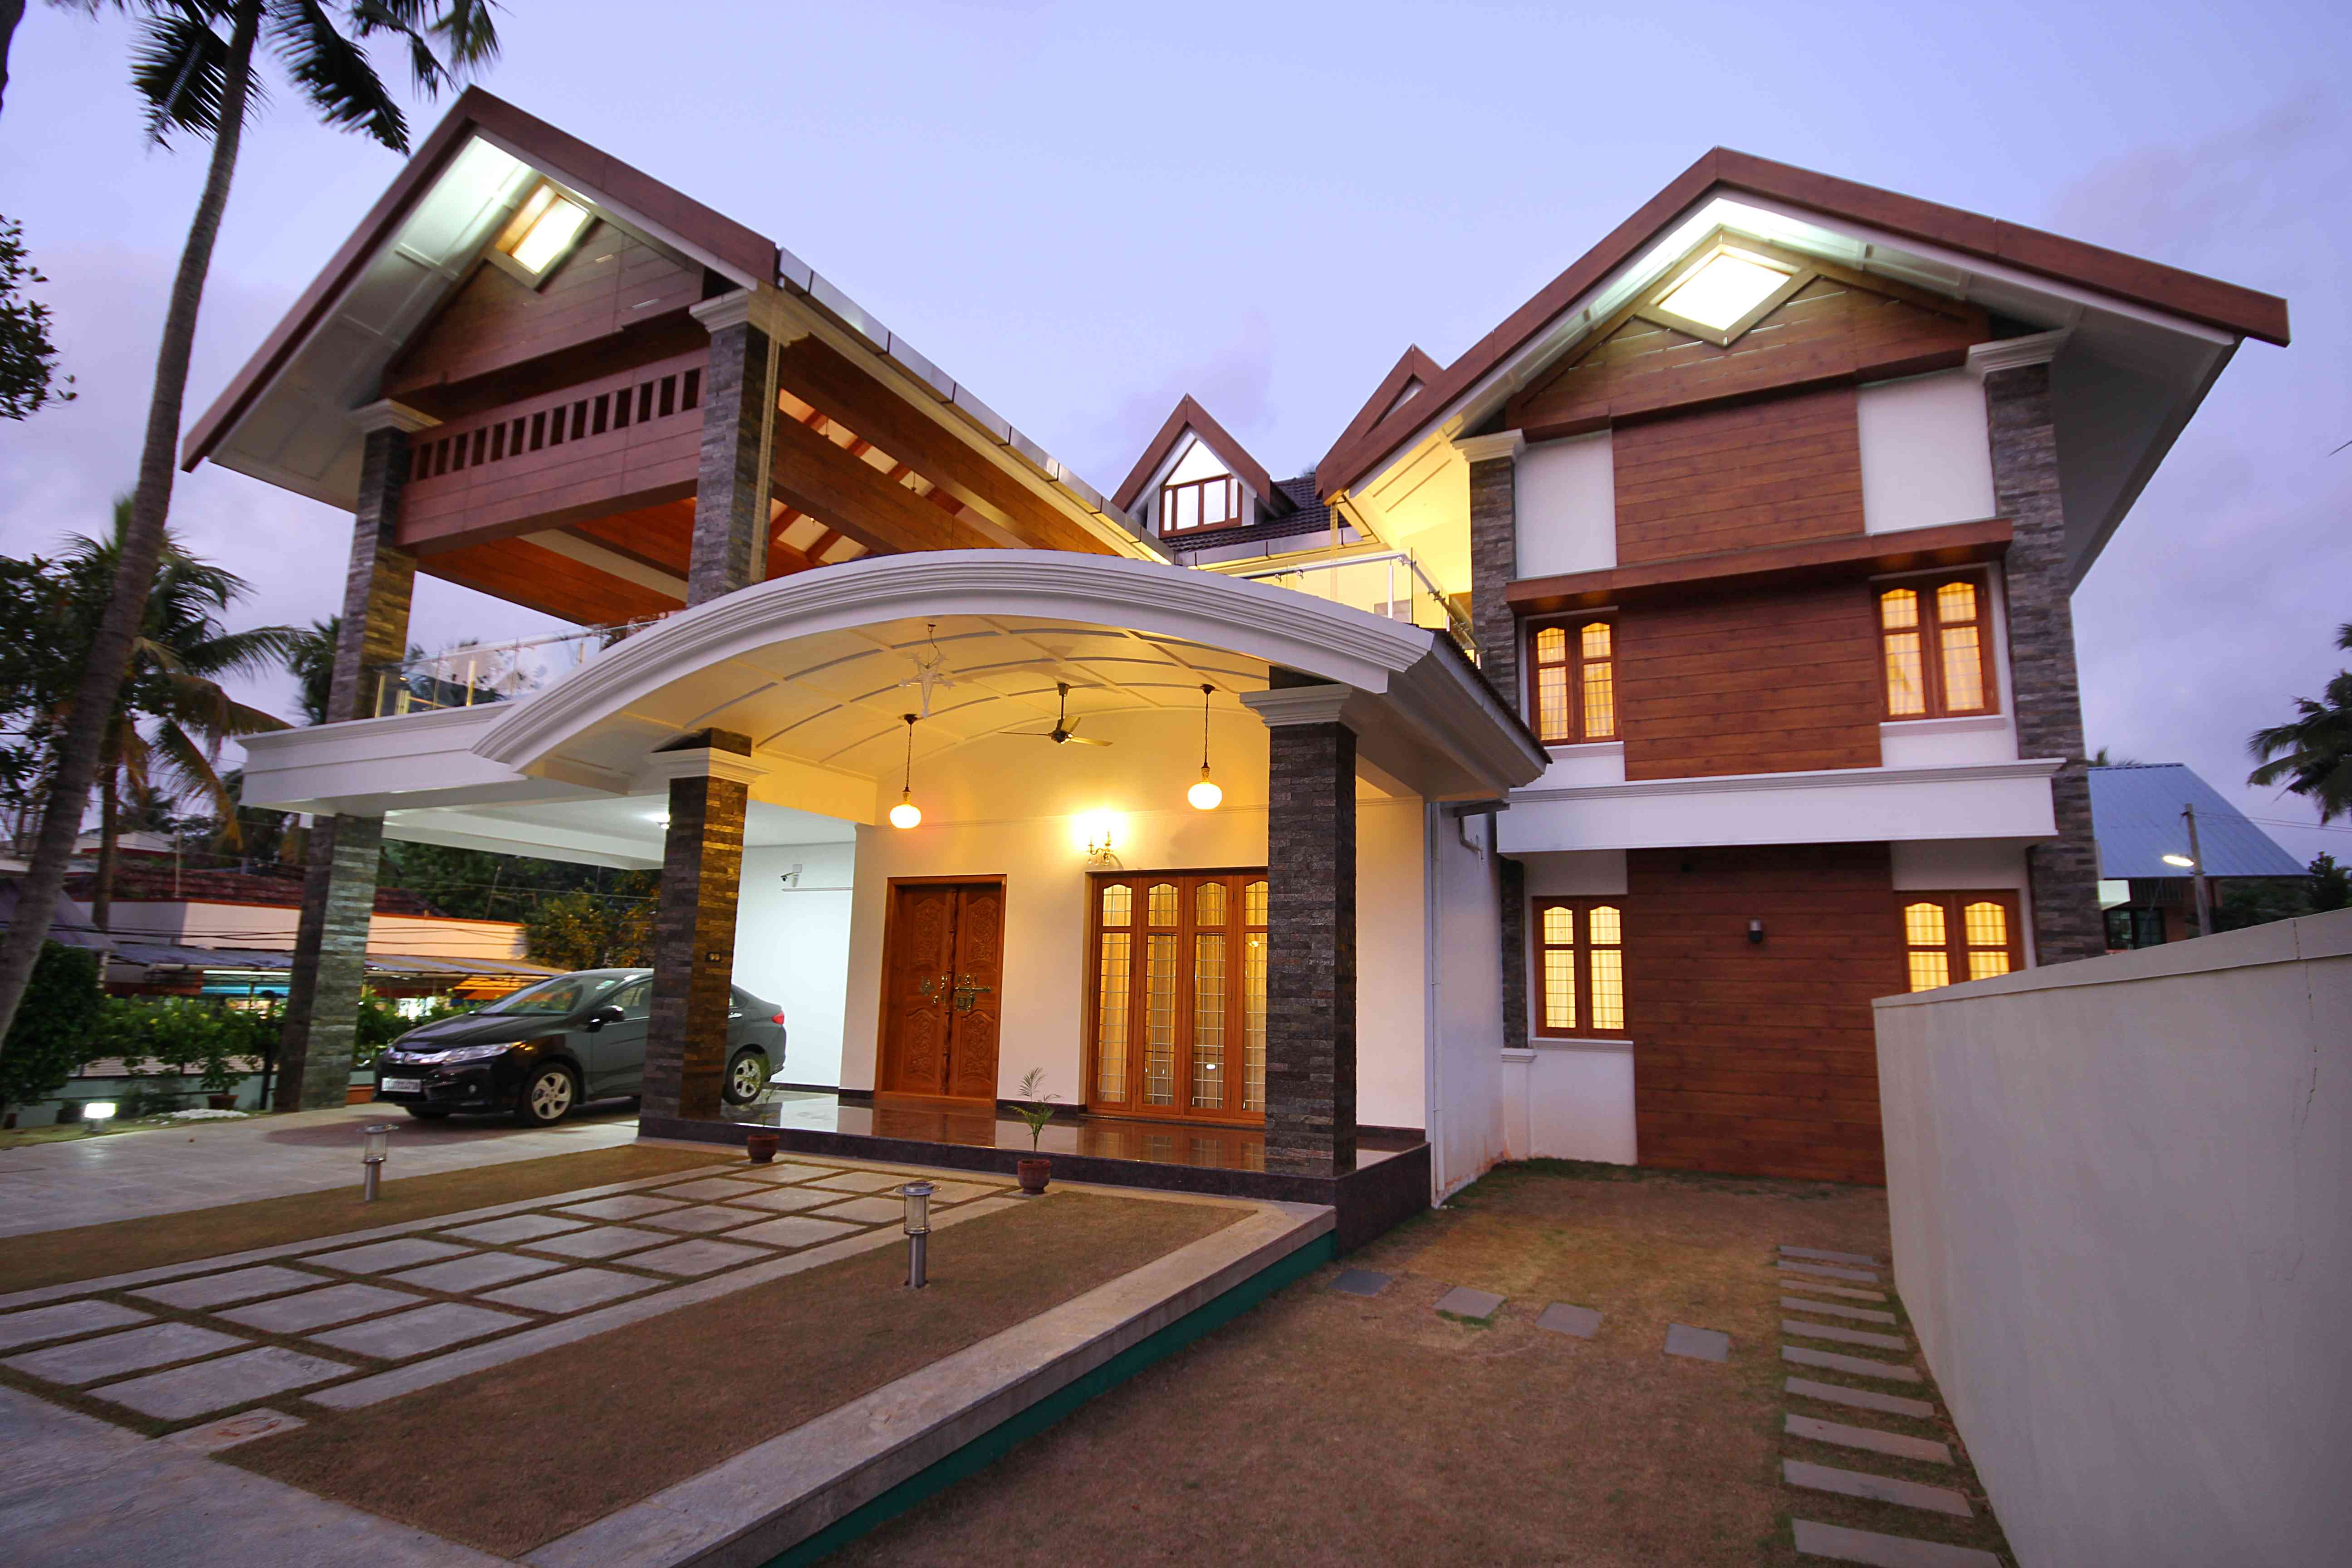 Front Elevation Slanting Roof Design : Home design exterior ideas in india